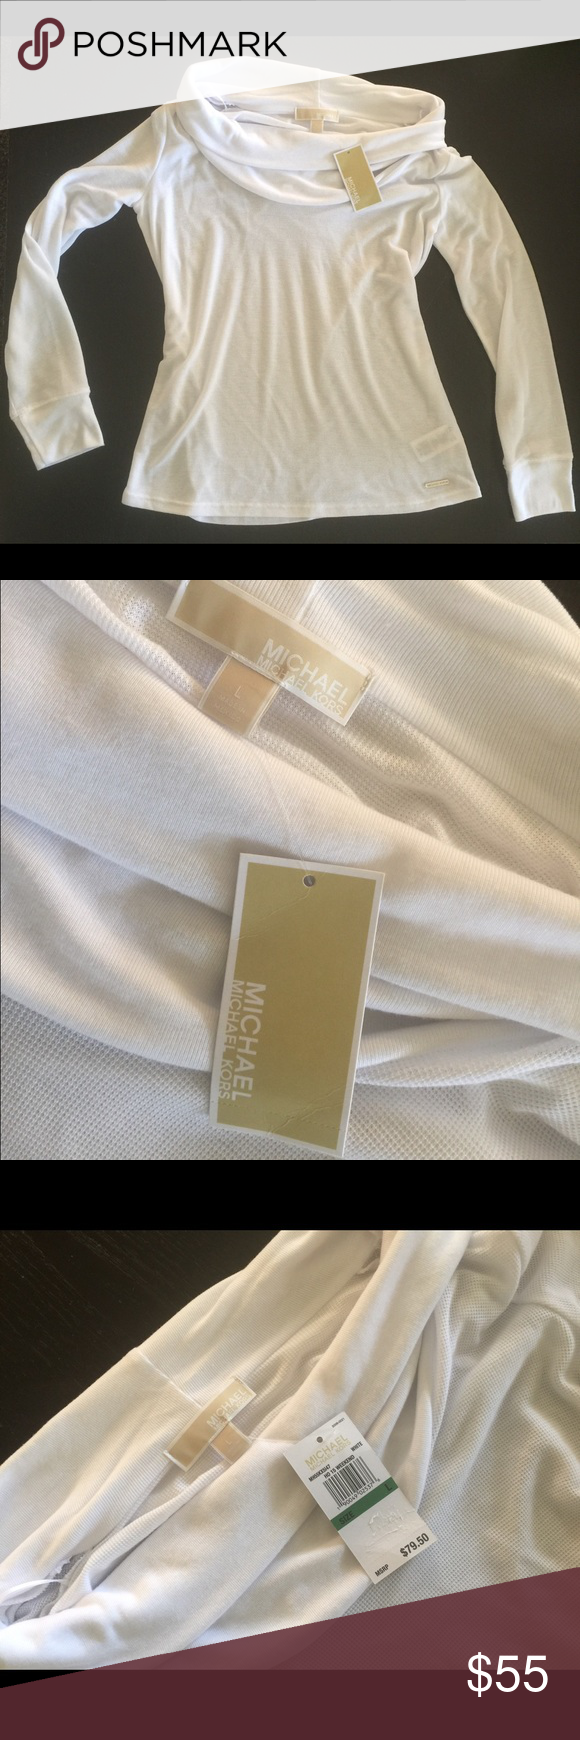 Michael Kors off the shoulder long sleeve Soft brand new Michael Kors off the shoulder long sleeve. Still has tags, bought it in December and I just never wore it. Michael Kors Tops